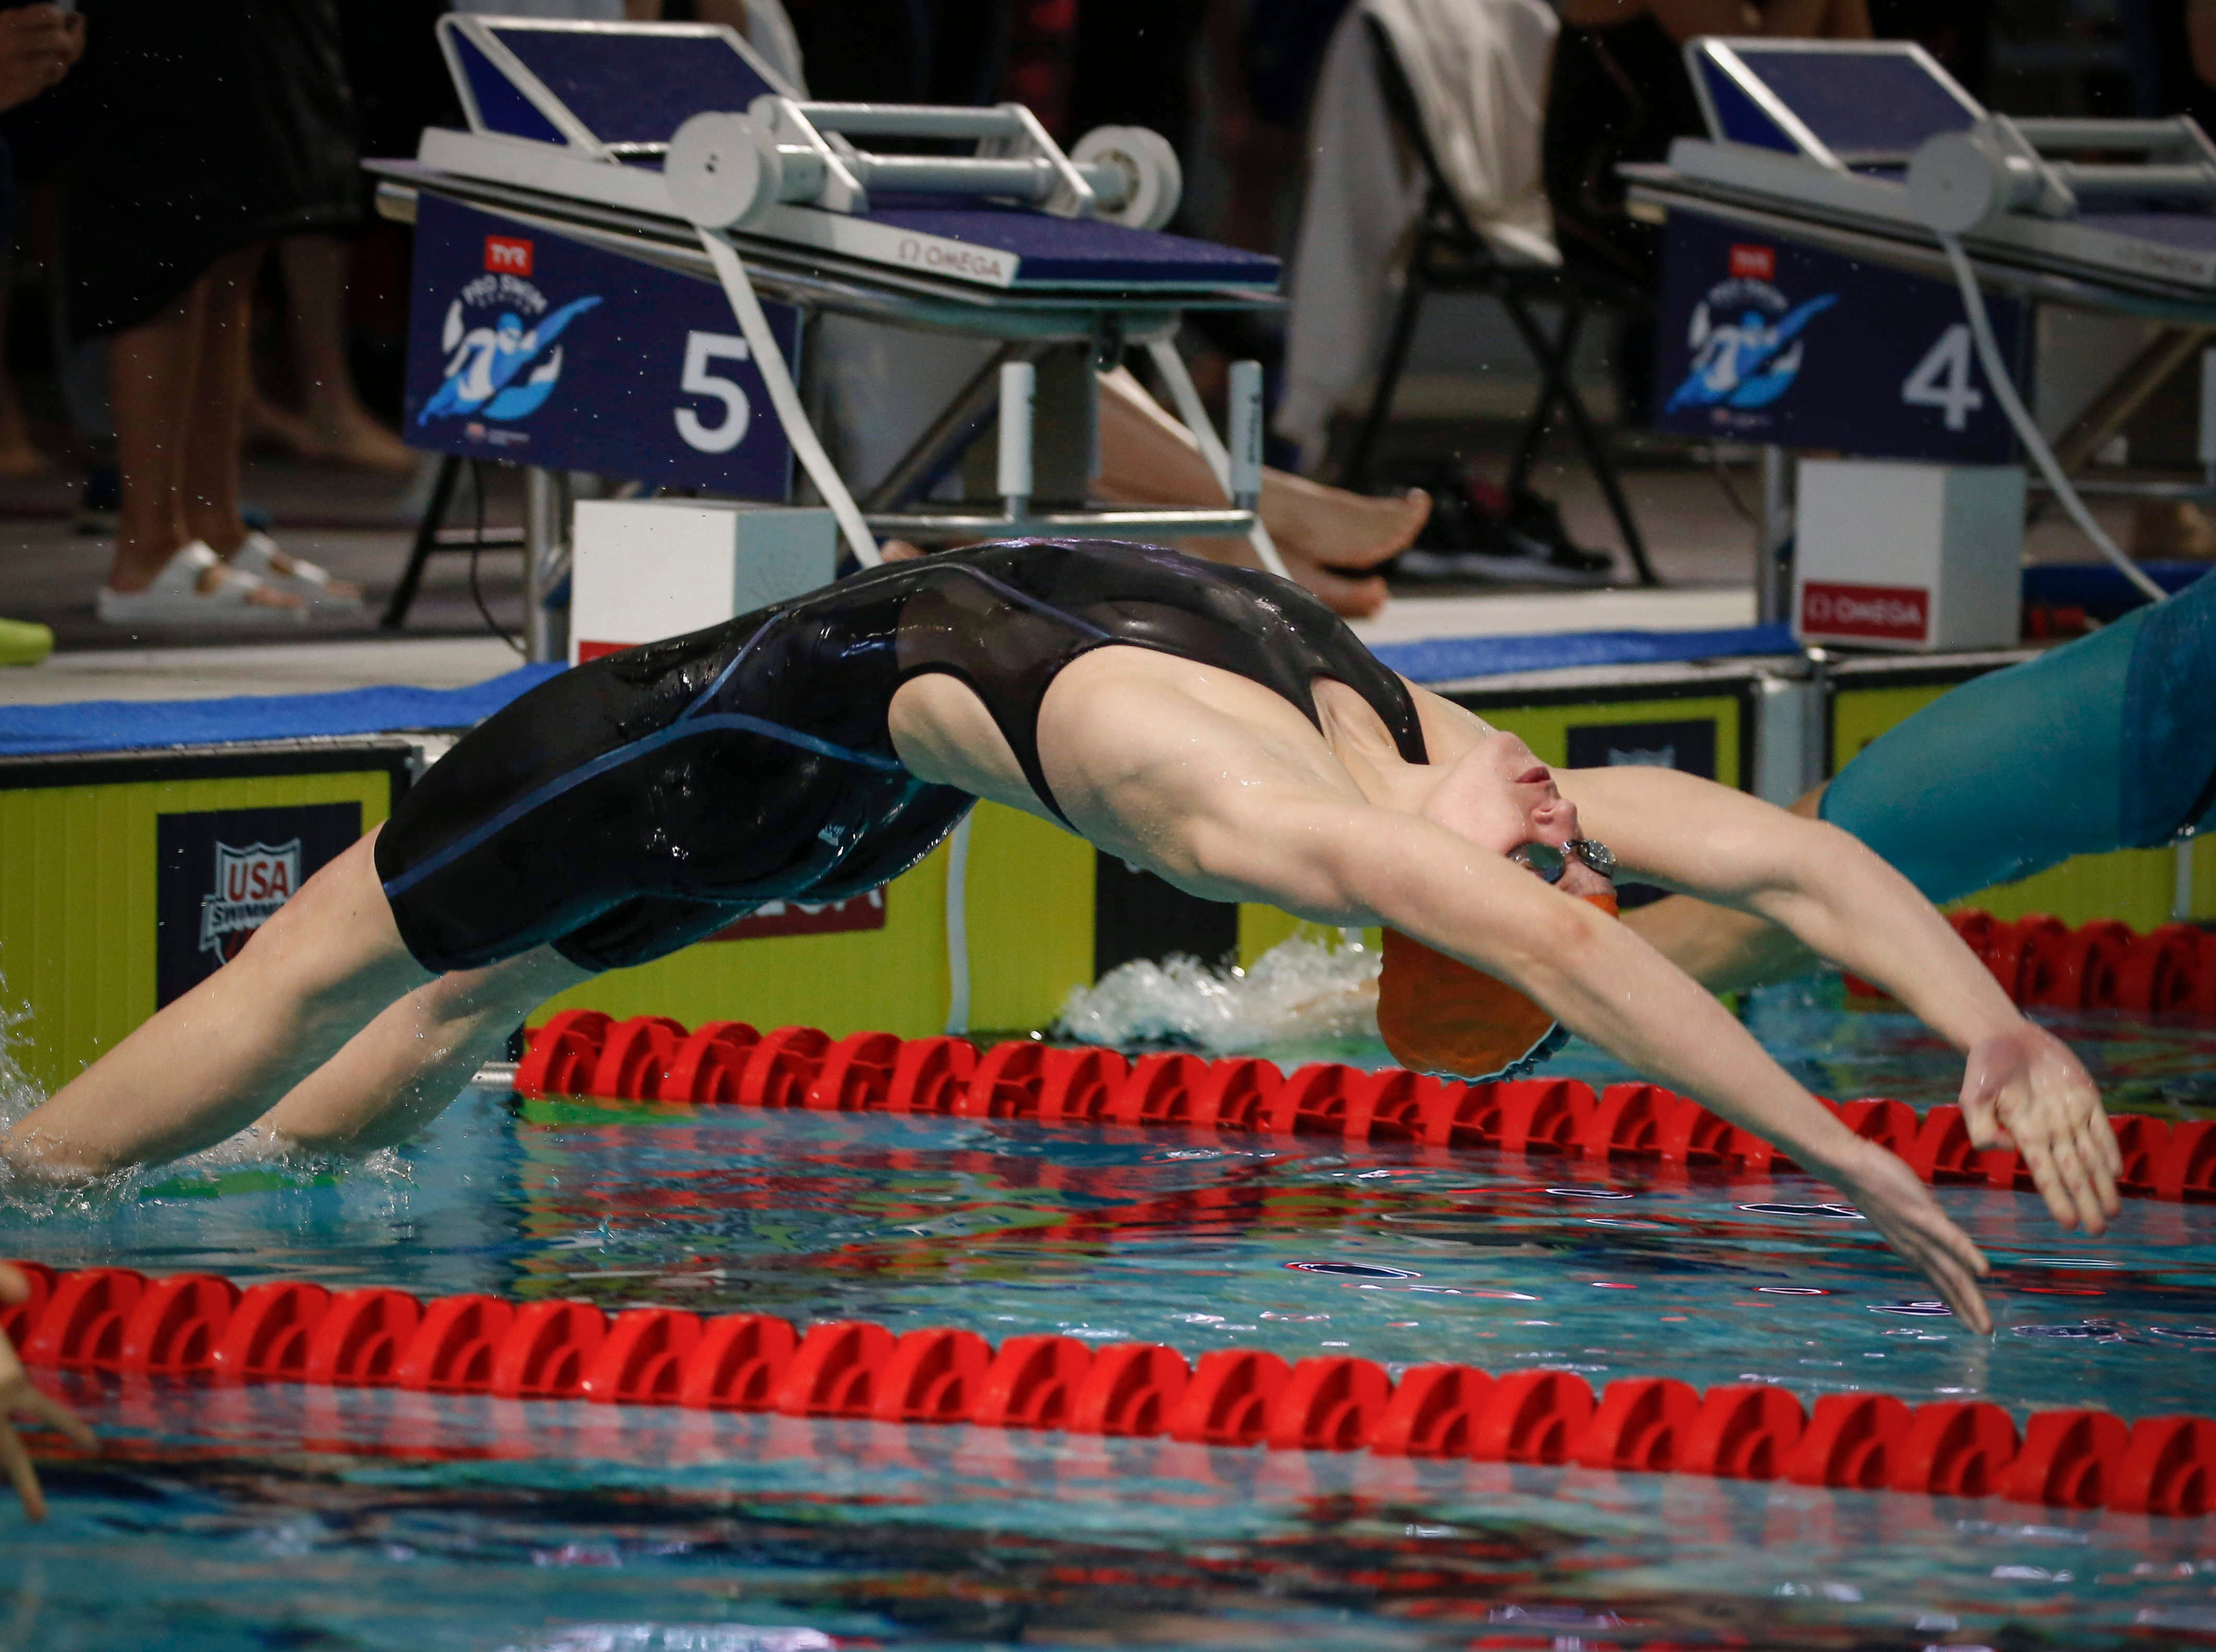 Amy Feddersen of Ames and a future University of Missouri swimmer explodes off the starting block in the 50-meter backstroke during the 2019 TYR Pro Swim Series on Thursday, March 7, 2019, at the downtown YMCA pool in Des Moines.